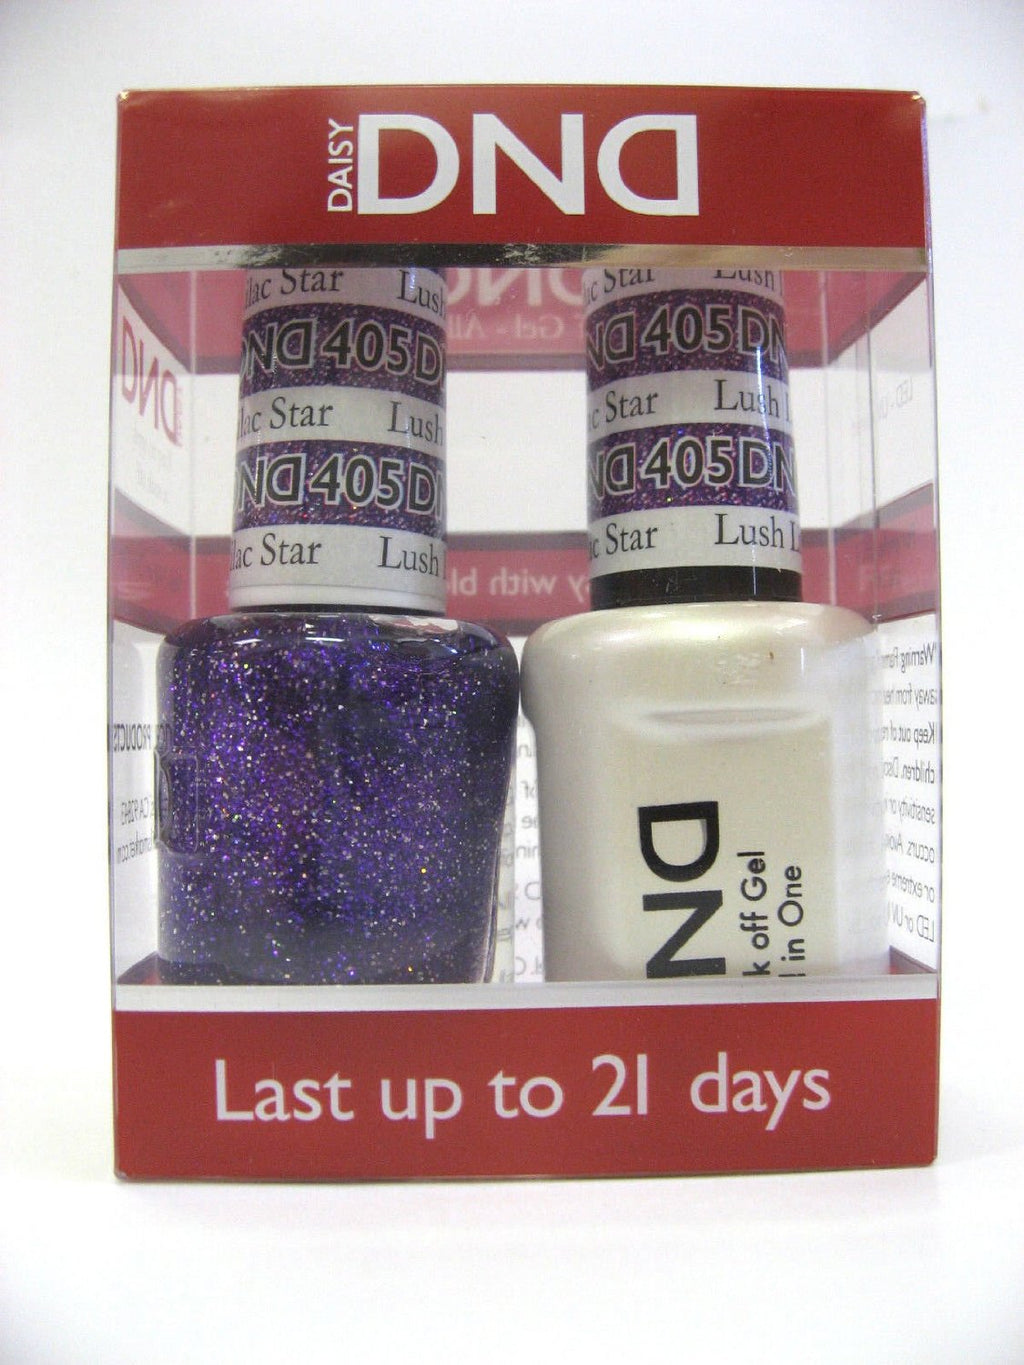 DND - Soak Off Gel Polish & Matching Nail Lacquer Set - #405 LUSH LILAC STAR